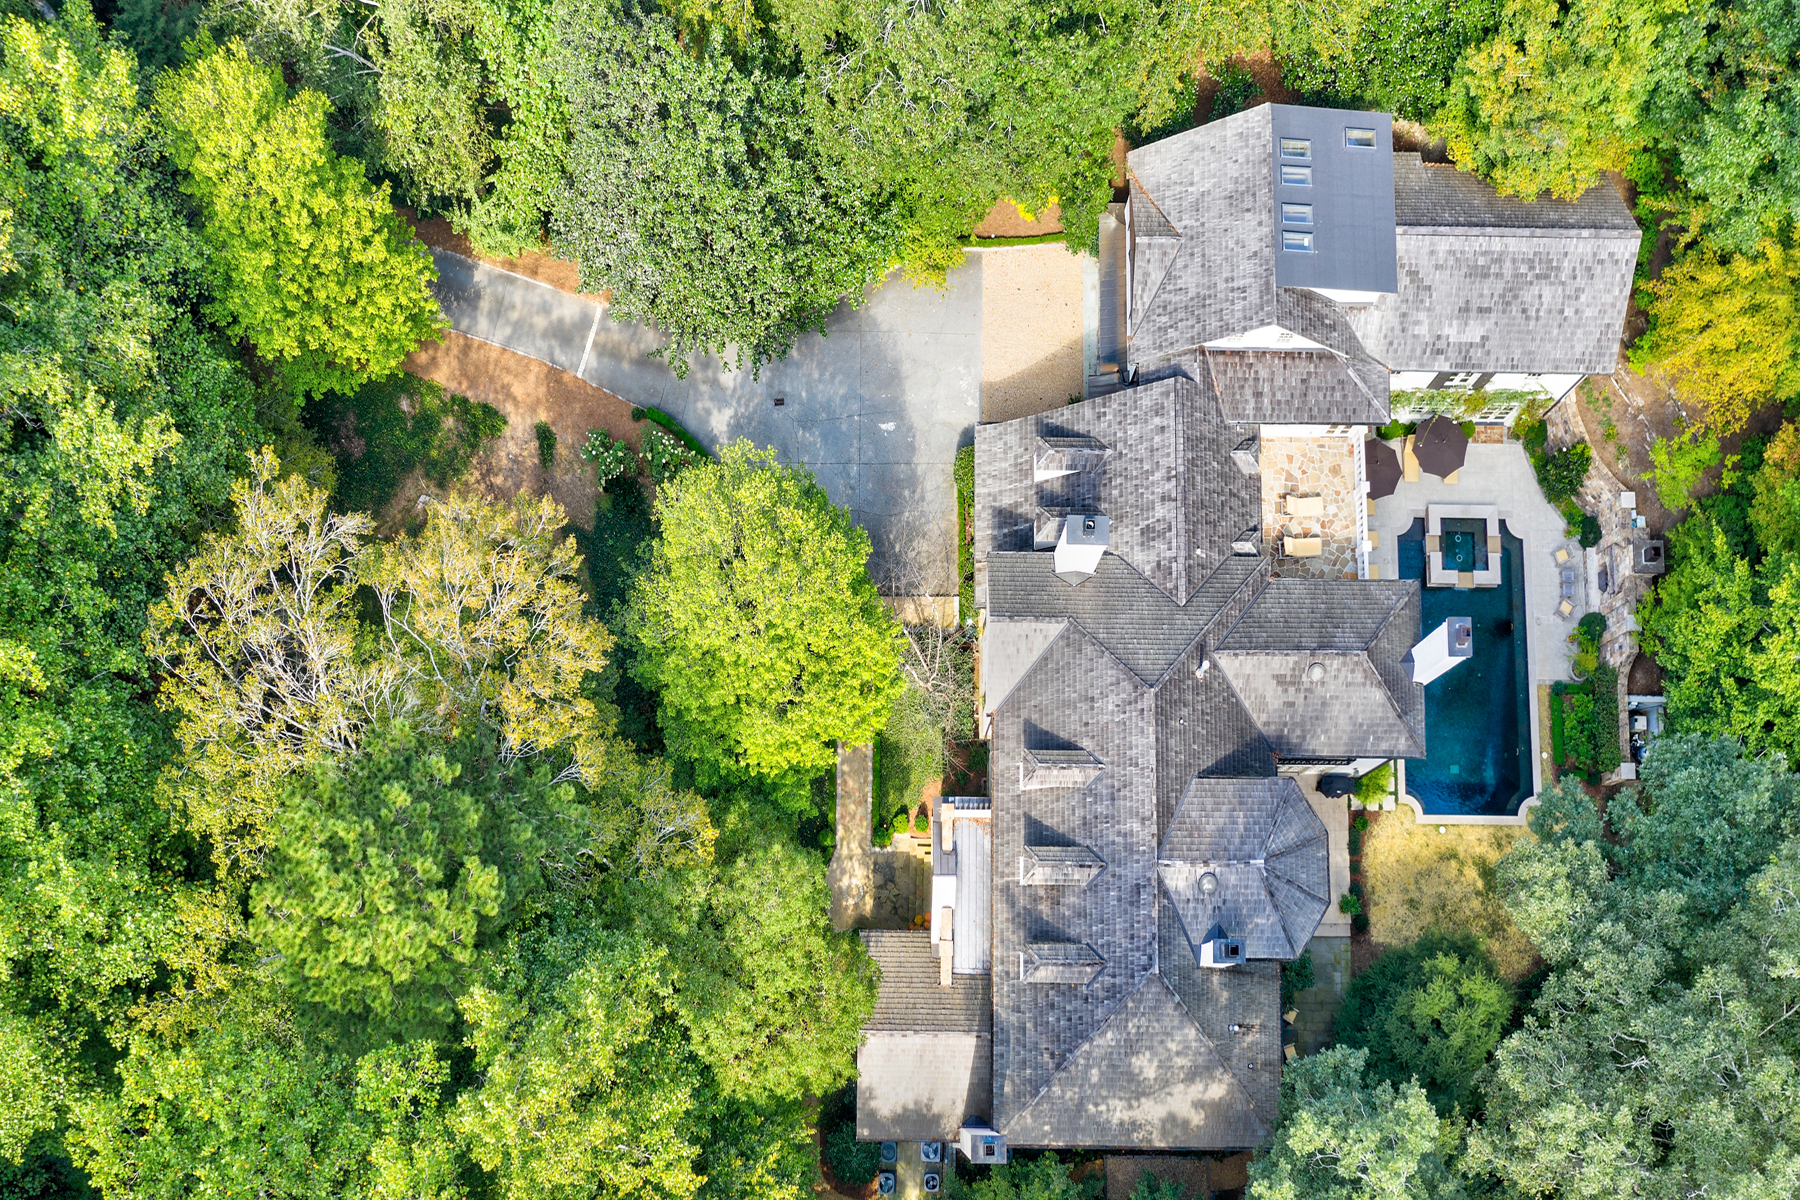 Single Family Homes for Sale at Handsome, Gracious and Elegant Buckhead Home 4359 Whitewater Creek Road NW Atlanta, Georgia 30327 United States